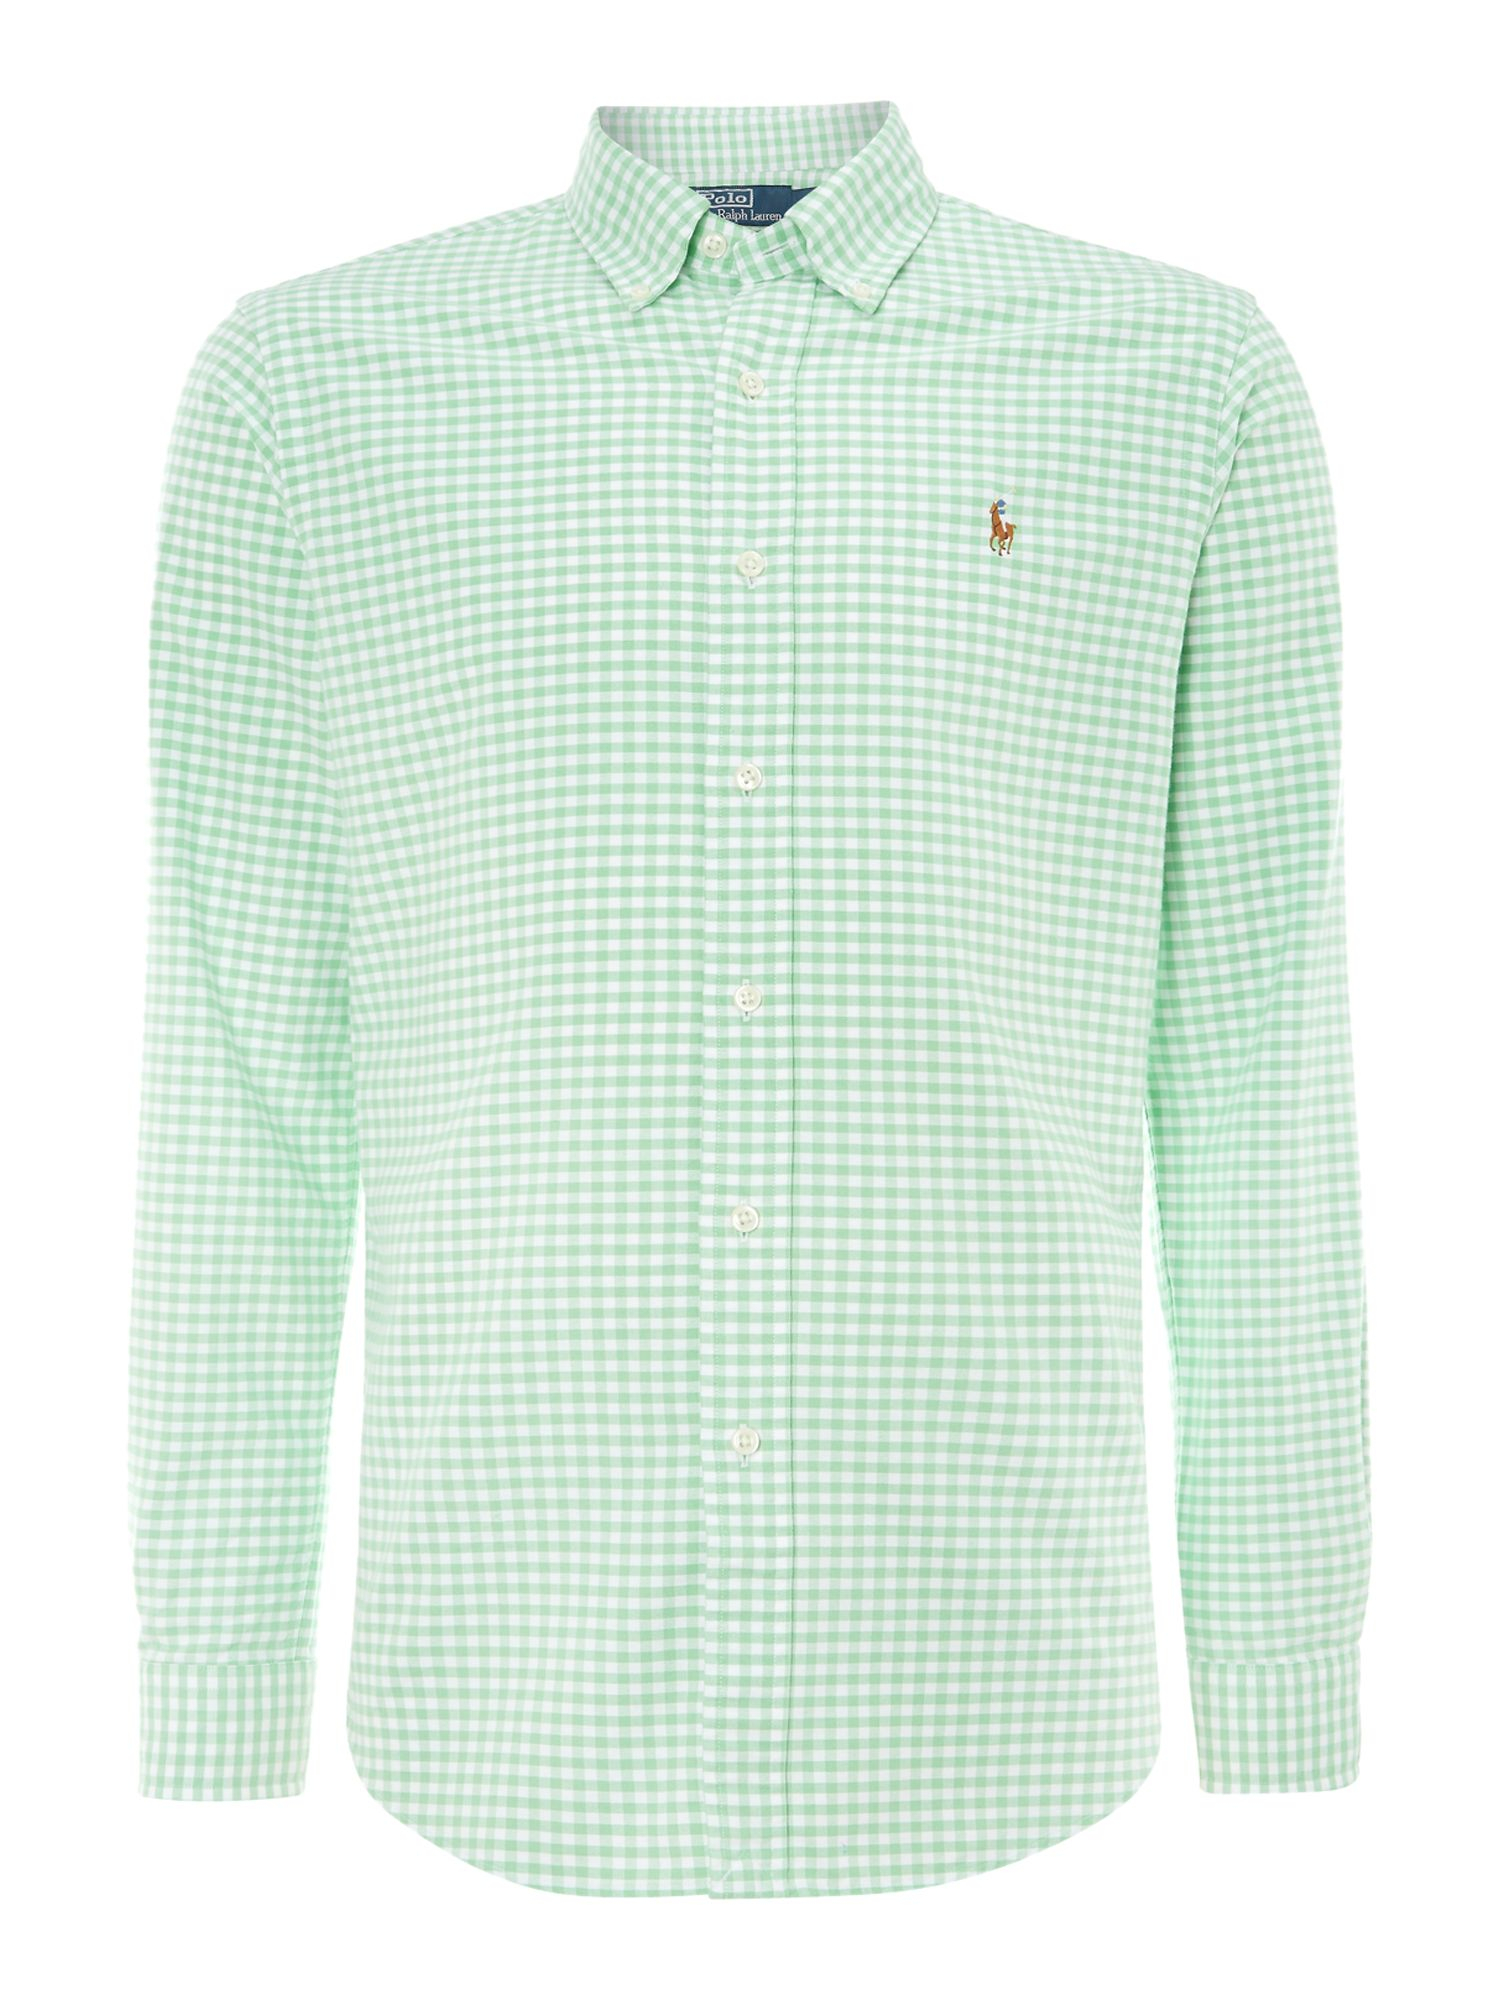 Lyst polo ralph lauren classic slim fit long sleeve for Mens green gingham dress shirt